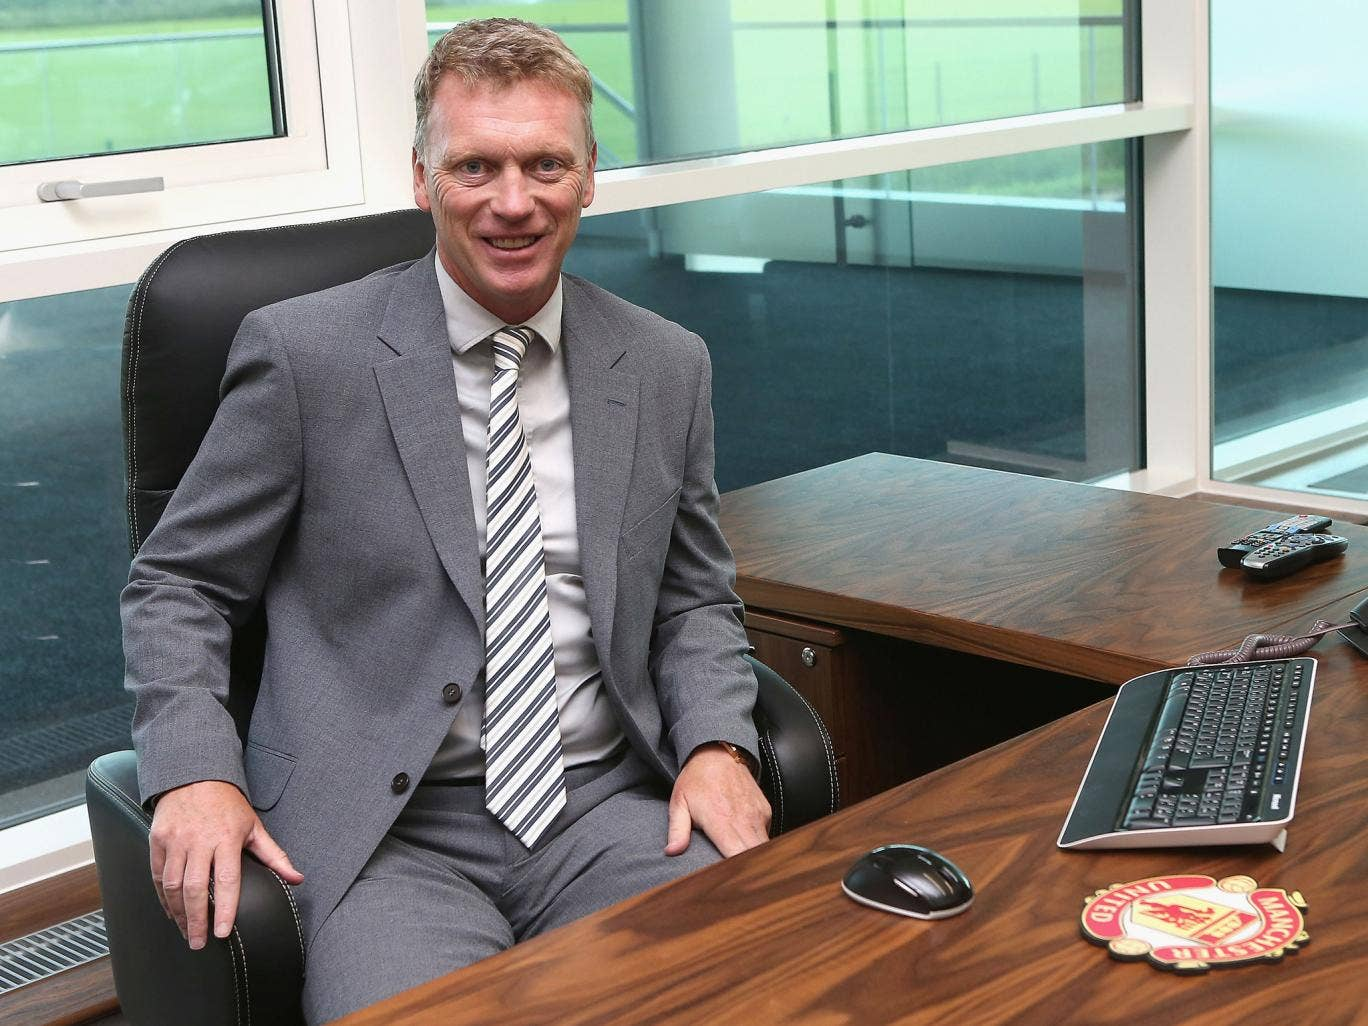 David Moyes gets to grips with his new office on his first day as Manchester United manager